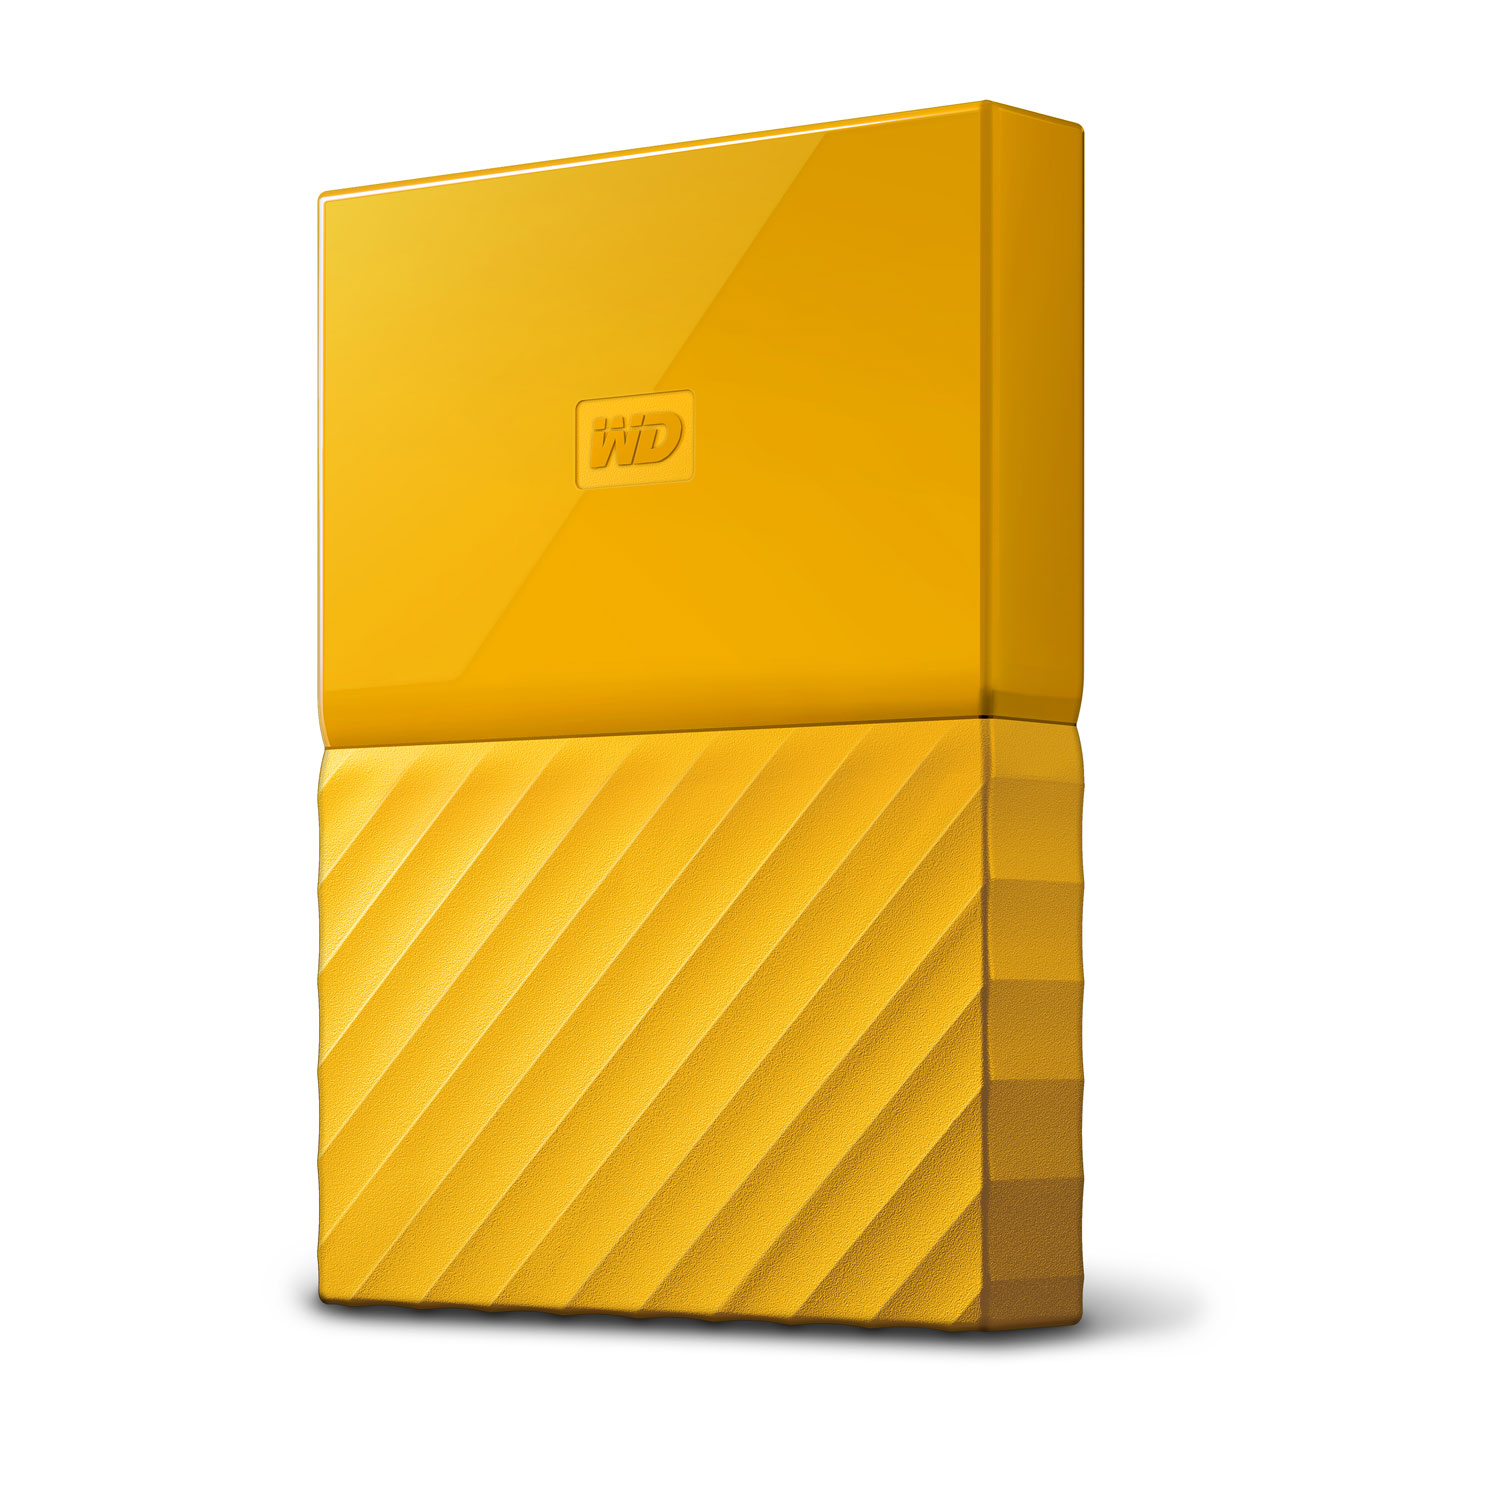 wd my passport 2 to jaune usb 3 0 disque dur externe. Black Bedroom Furniture Sets. Home Design Ideas